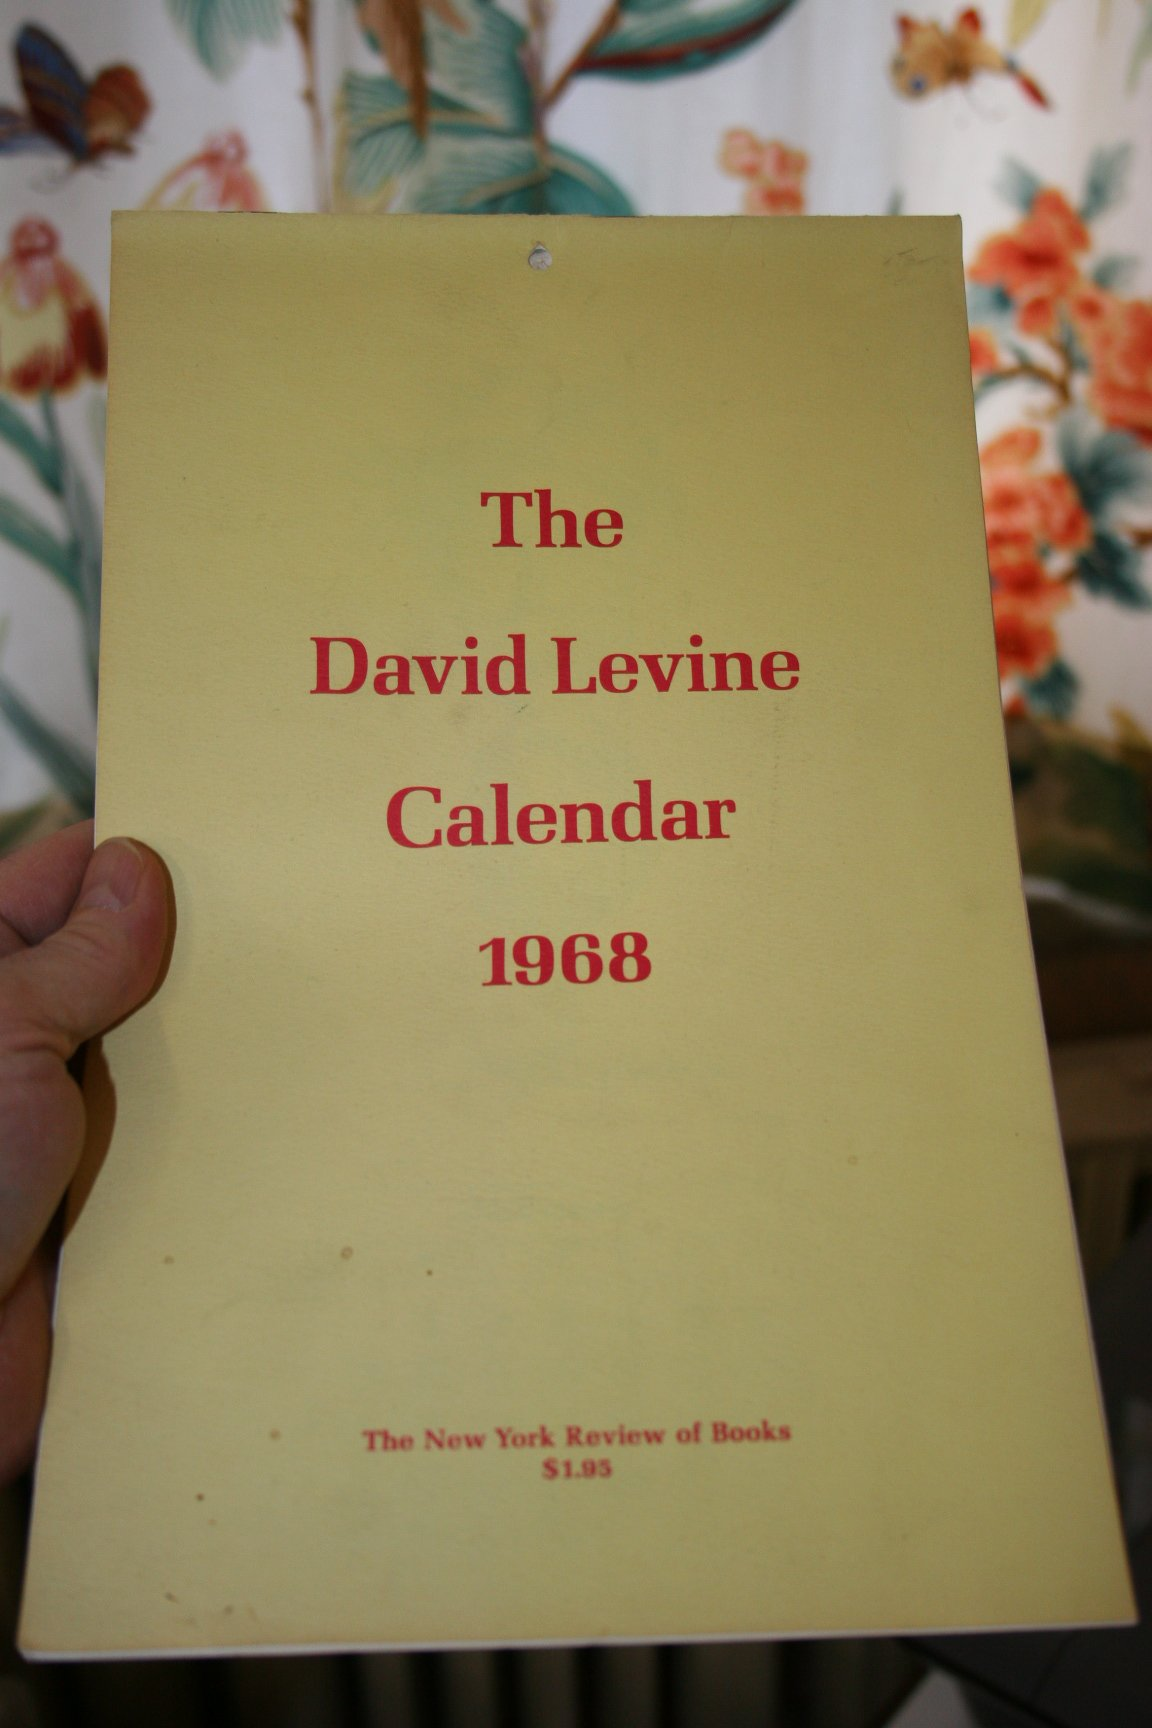 David Levine Calendars From the New York Review of Books, david levine